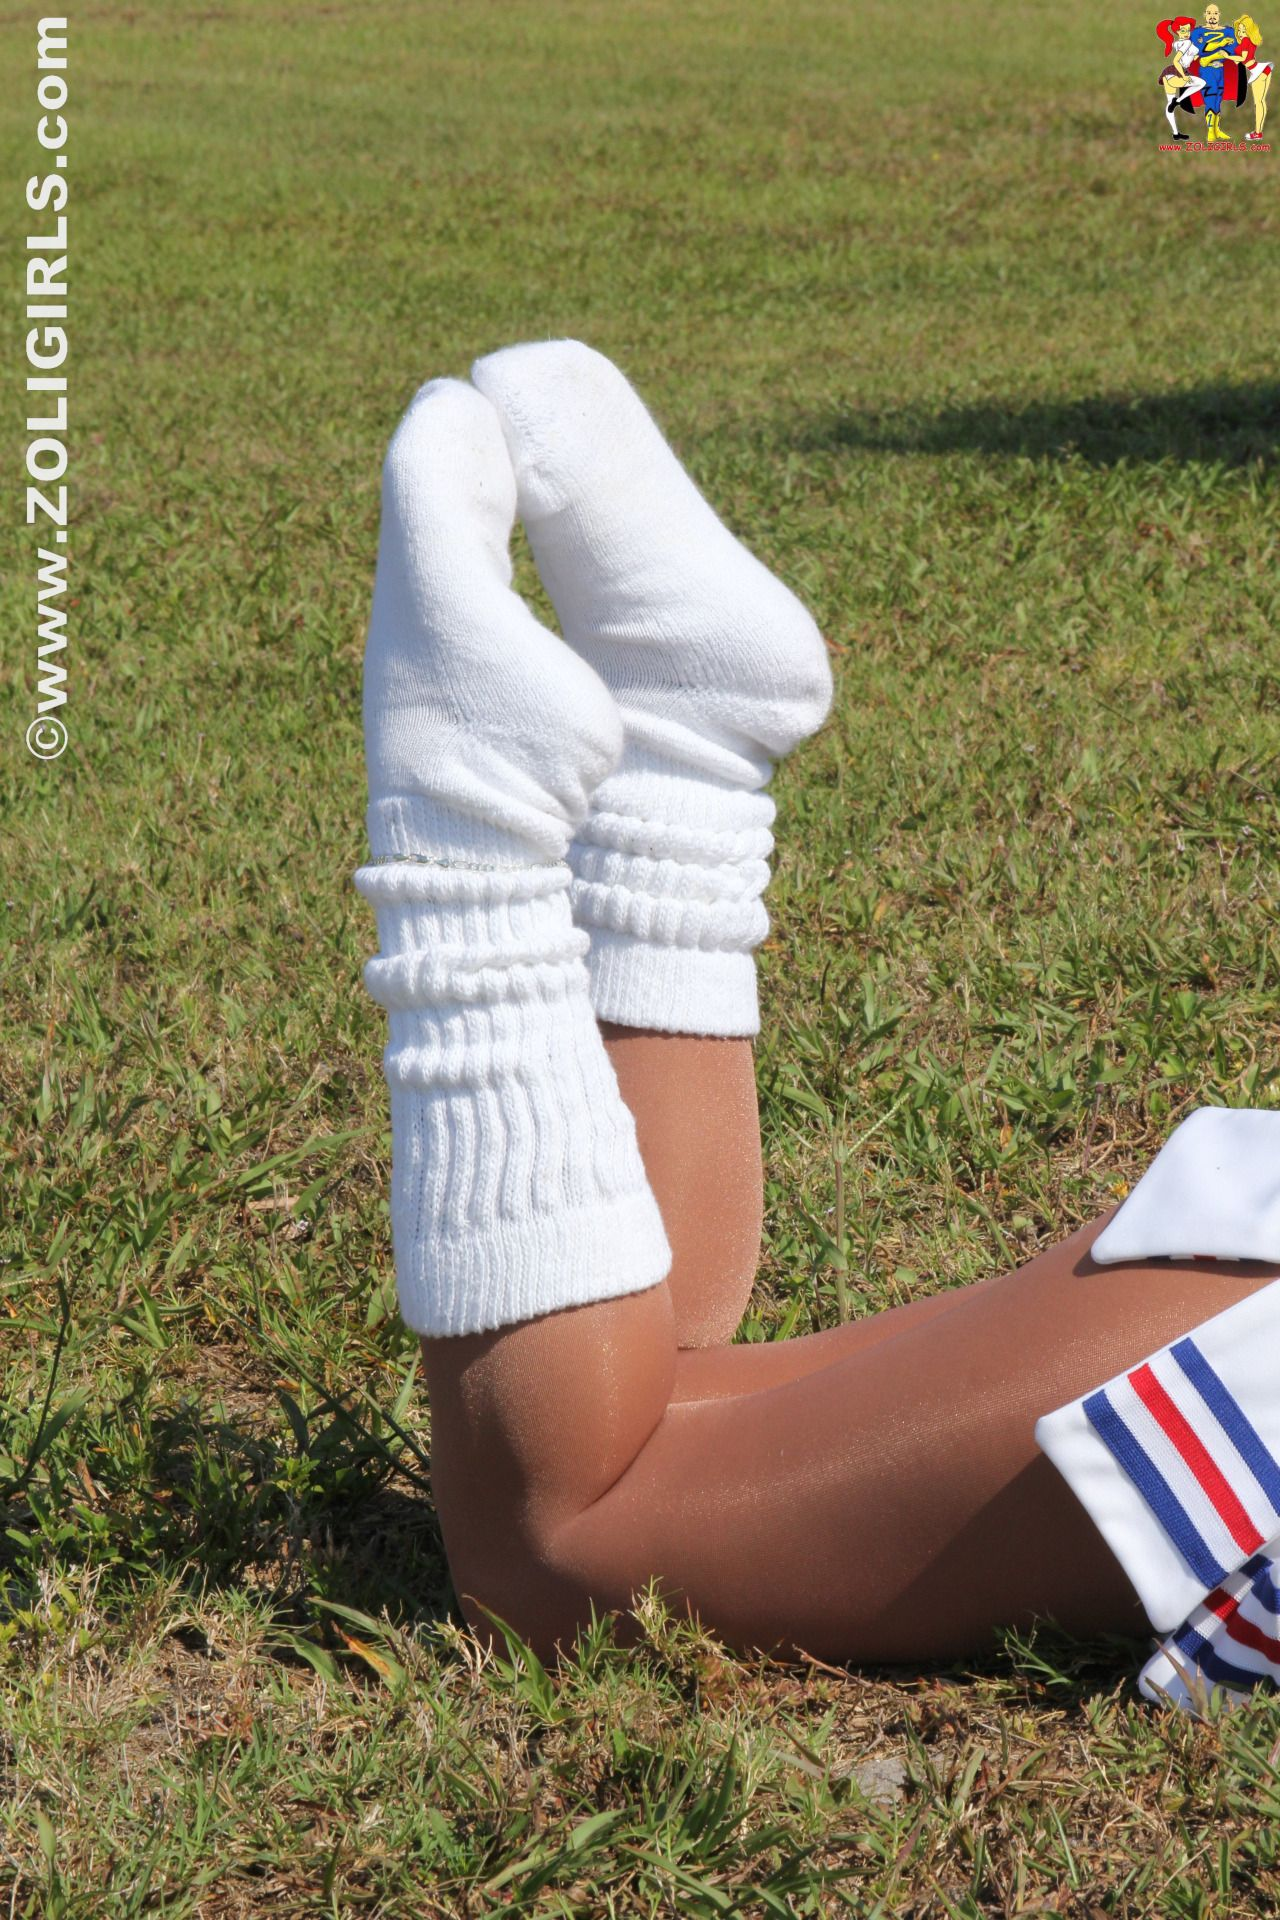 94b143690a7bb Leg Warmers and Socks are Sexy | Hooters socks | Socks, Leg warmers ...